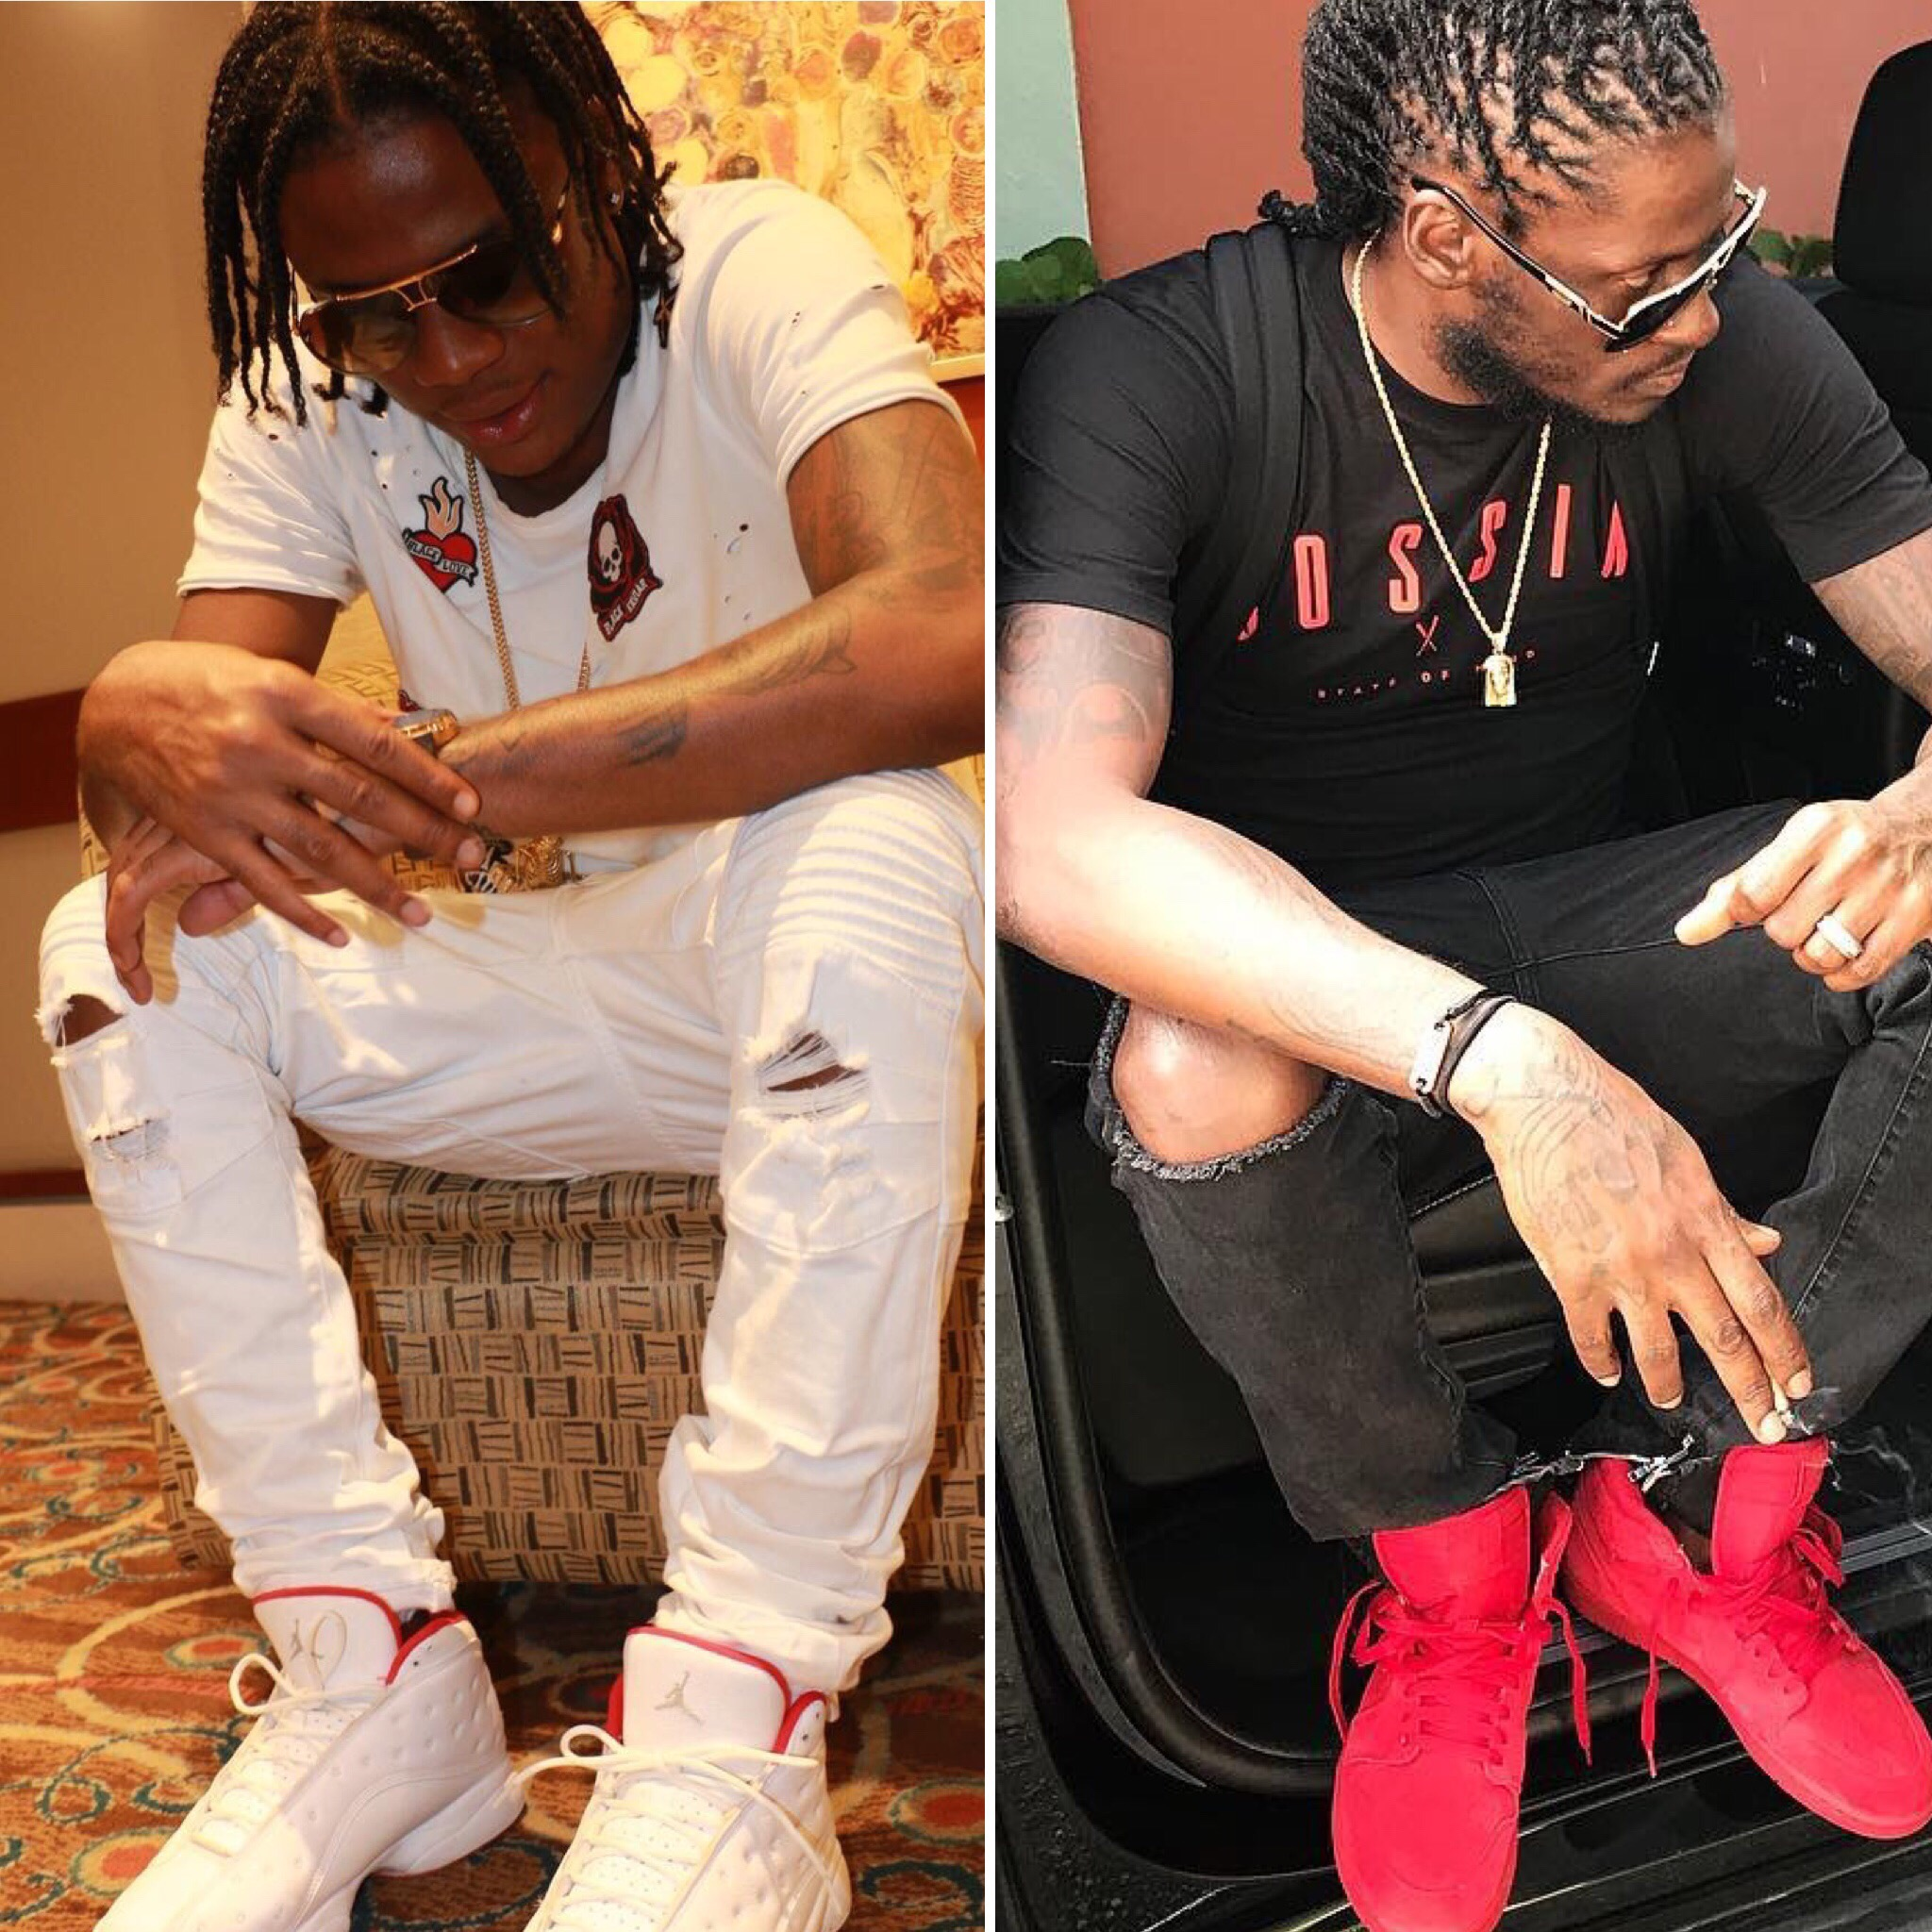 Aidonia Takes Jabs At Masicka In New Single 'Hot Tool'